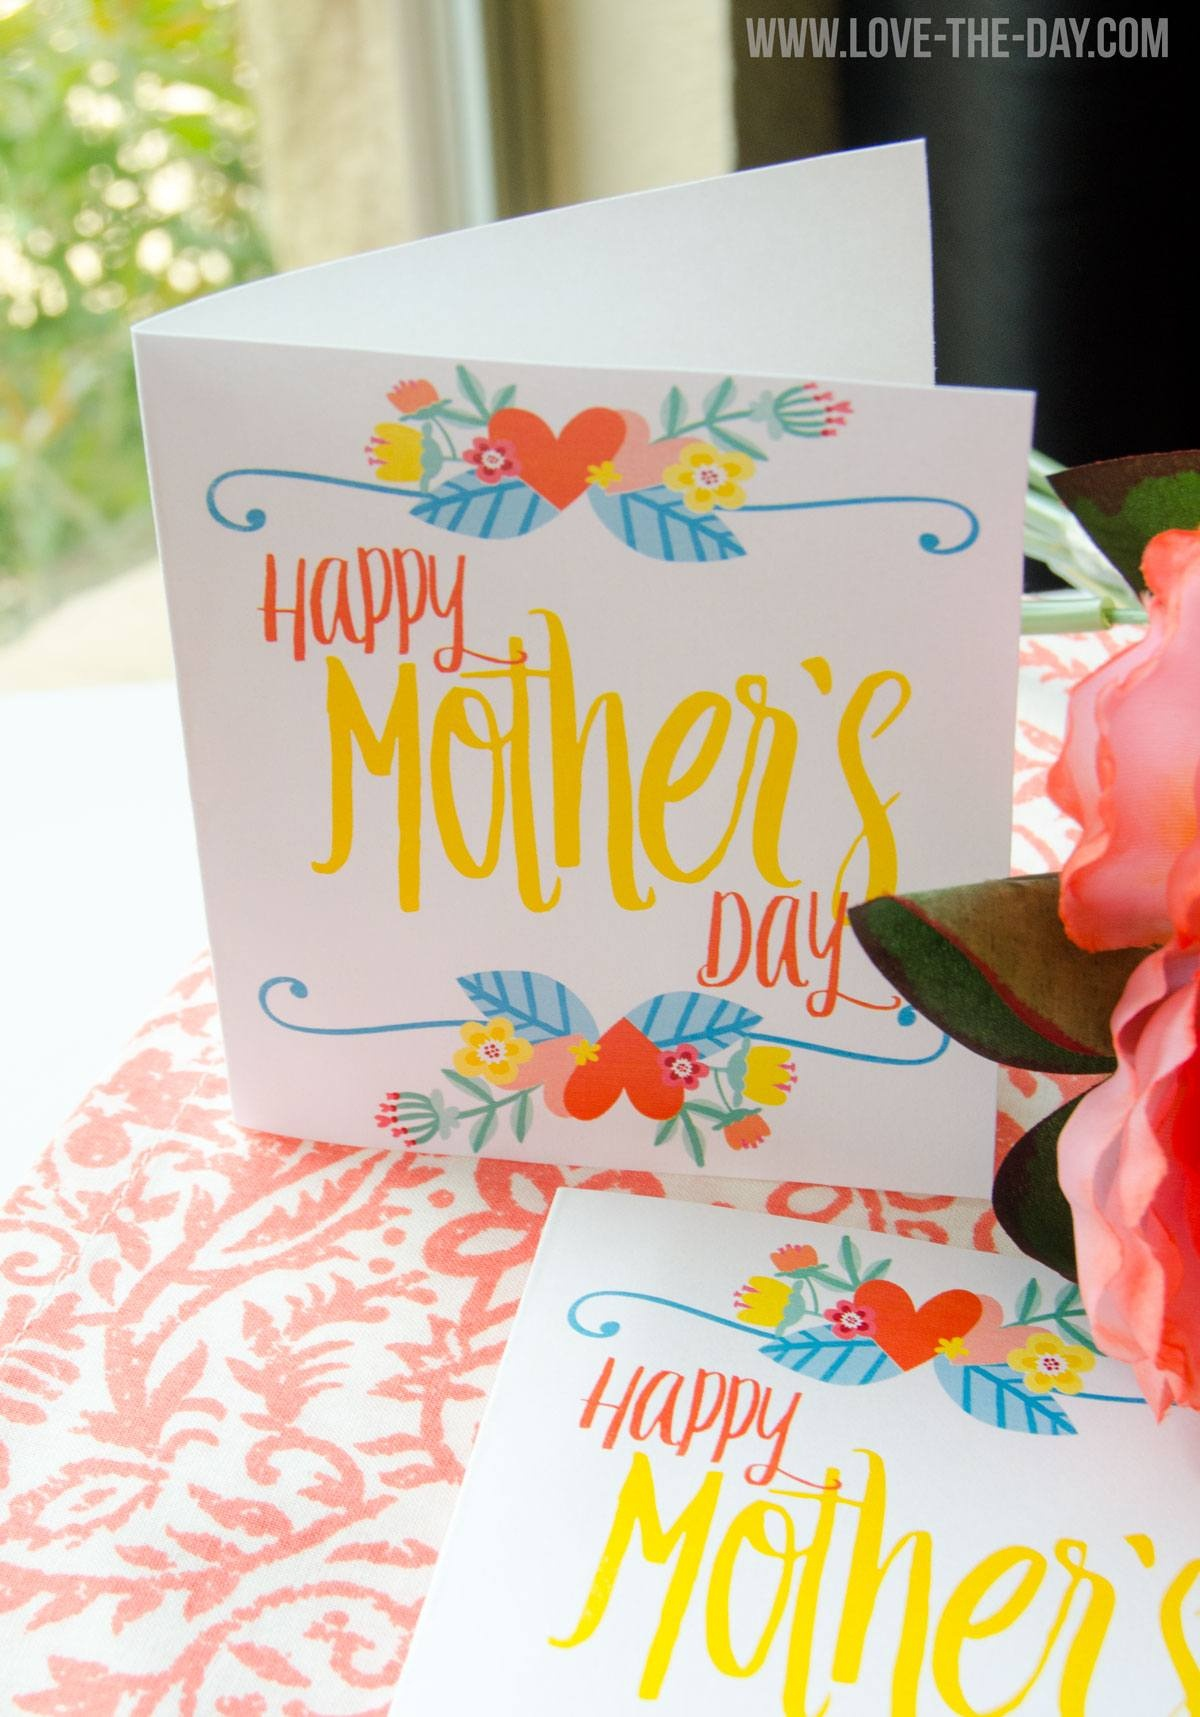 Free Printable Mother's Day Cardlindi Haws Of Love The Day - Free Printable Mothers Day Cards To My Wife